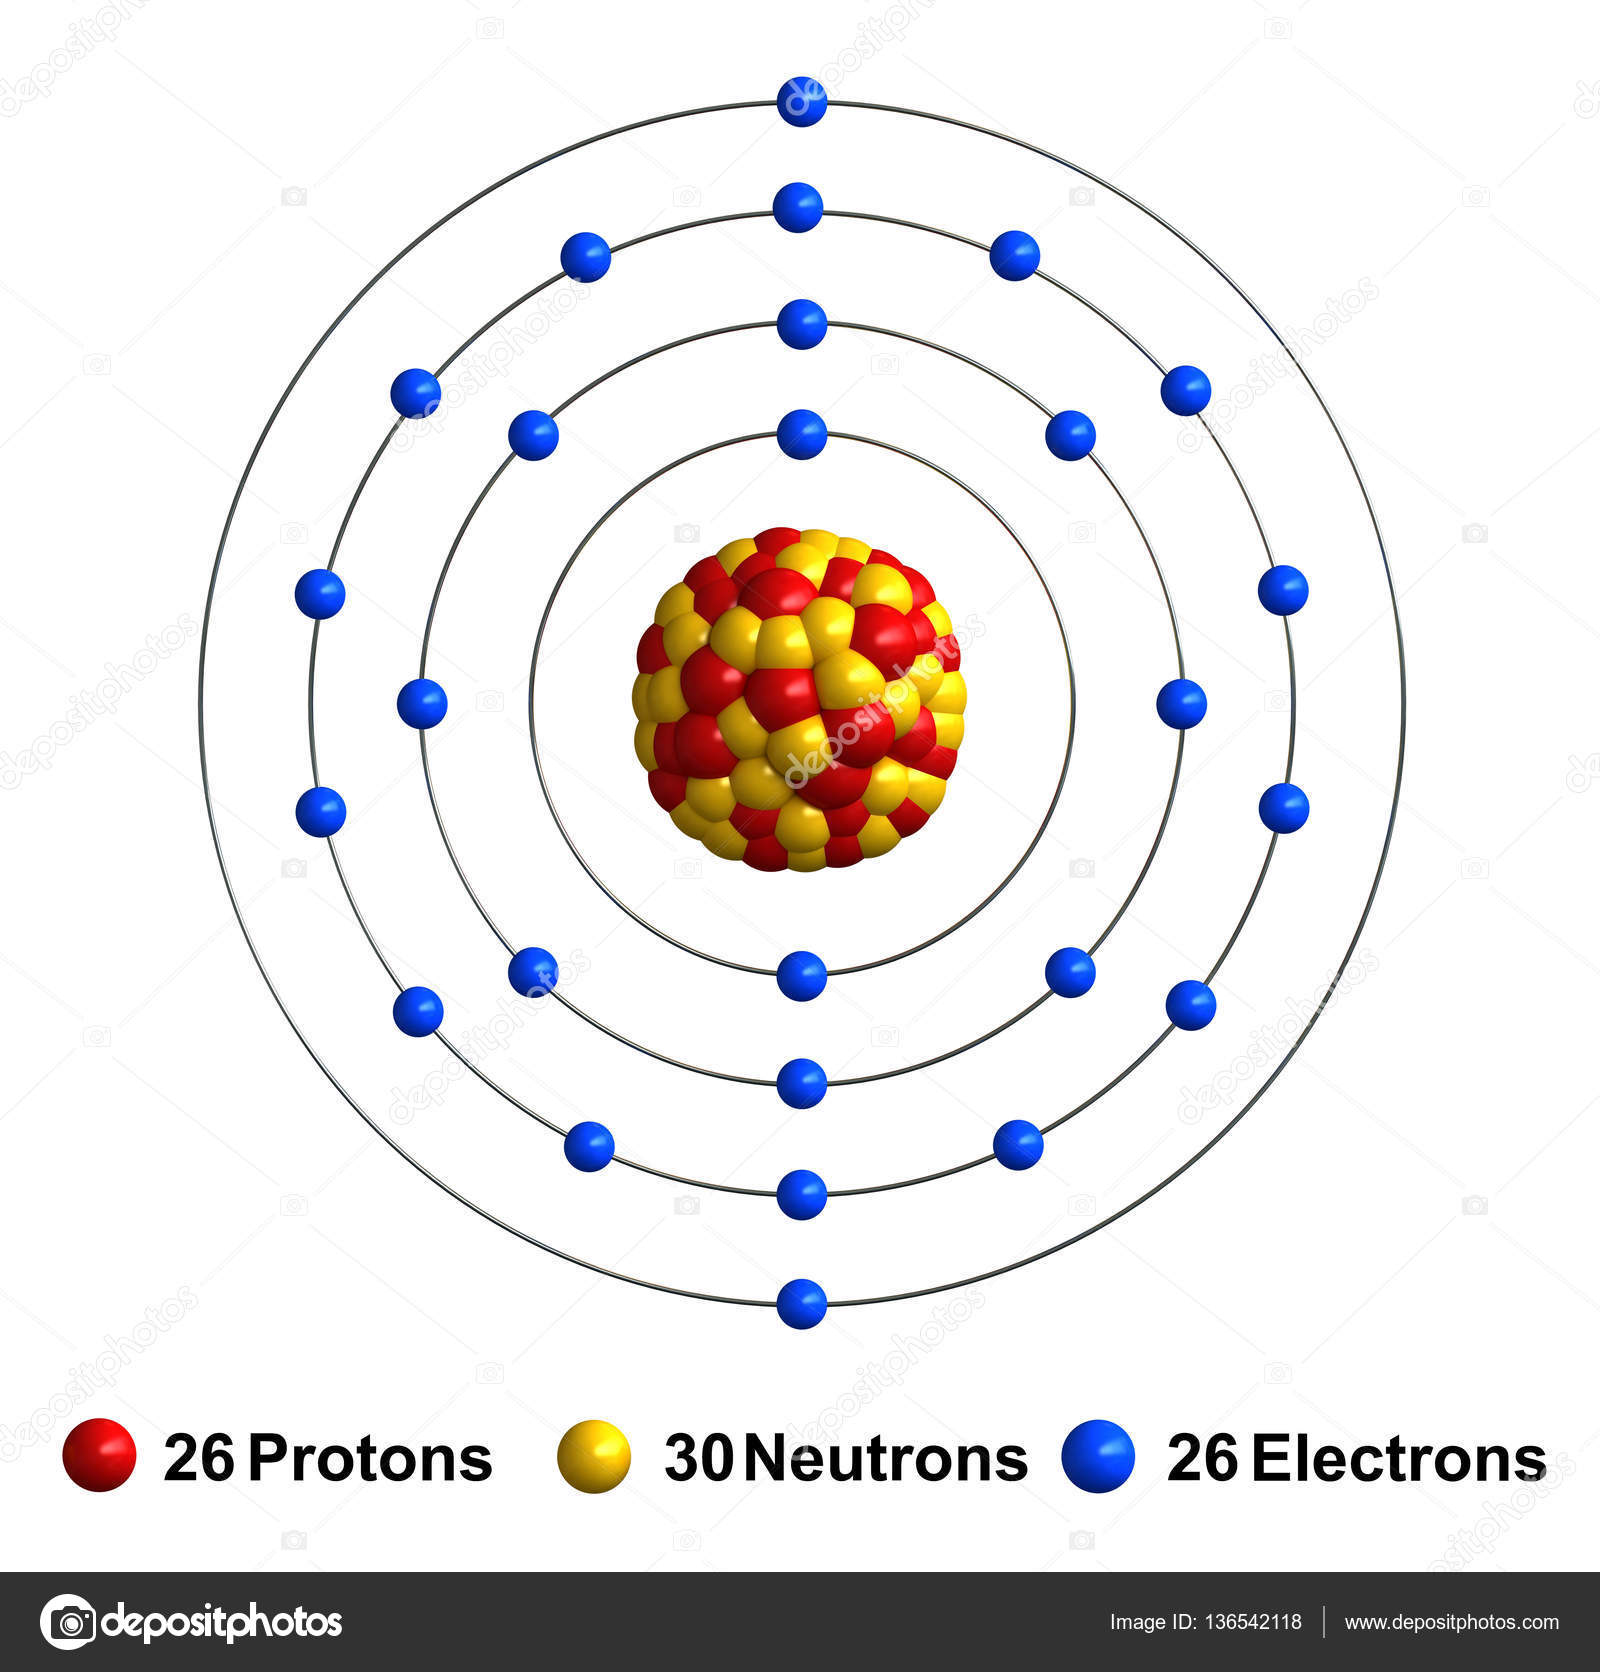 structure of atom If the charge of an entire atom is 0, or neutral, there are equal numbers of positive and negative charges neutral atoms have equal numbers of electrons and protons the third particle is the neutron.